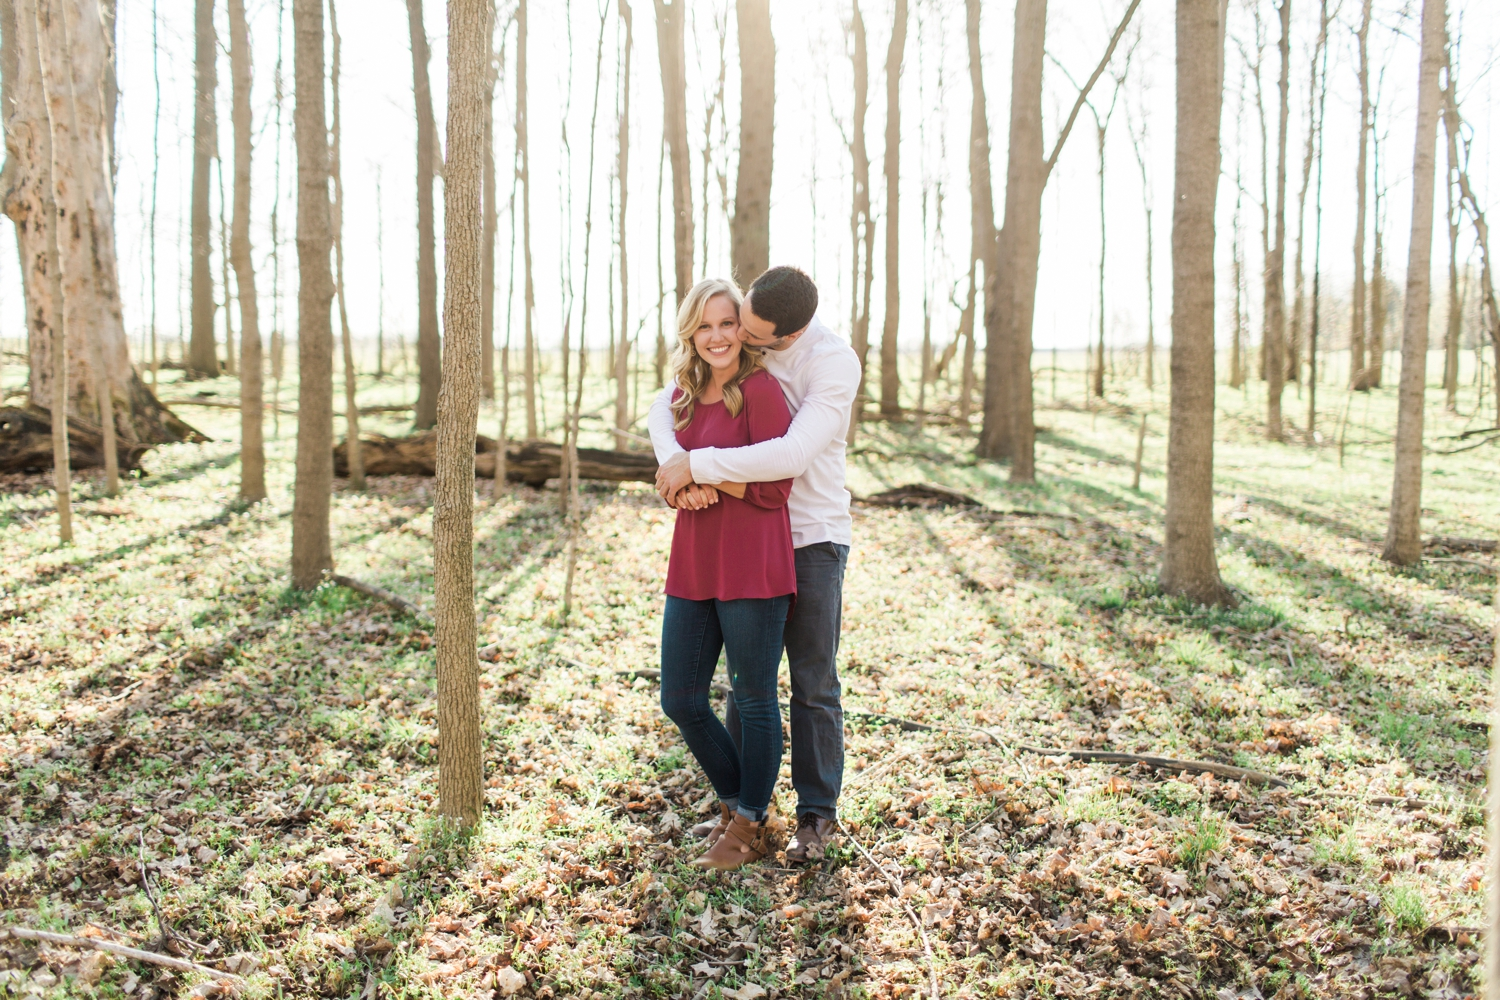 indianapolis_wedding_photographer_golden_hour_engagement_chloe_luka_photography_6094.jpg